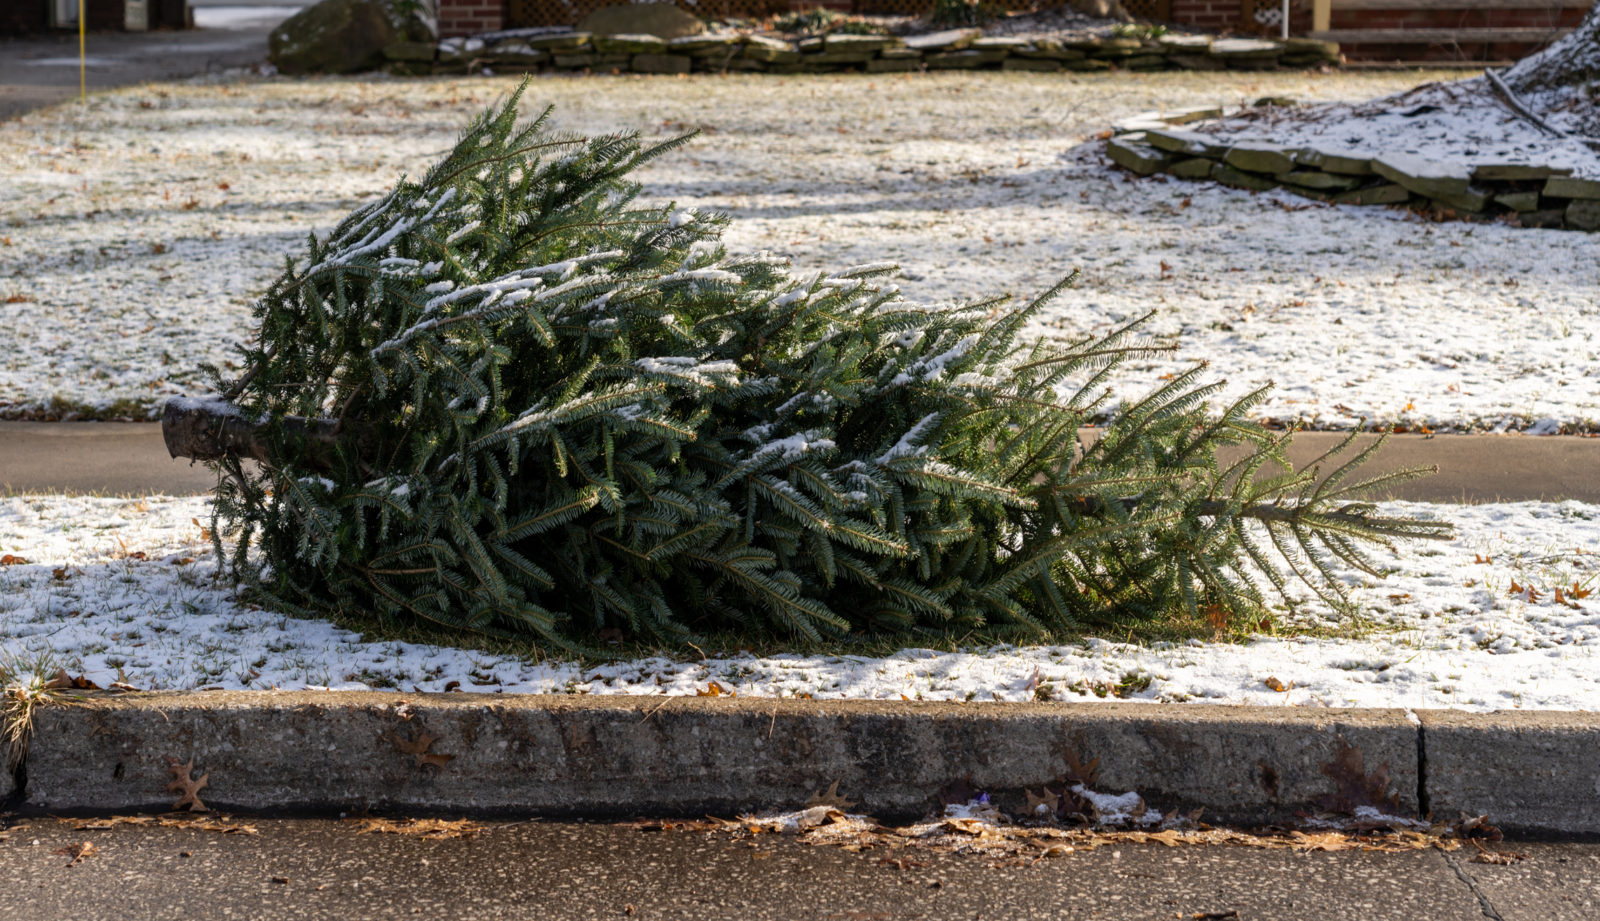 A picture of a live Christmas tree left on the curb for recycling. LCA